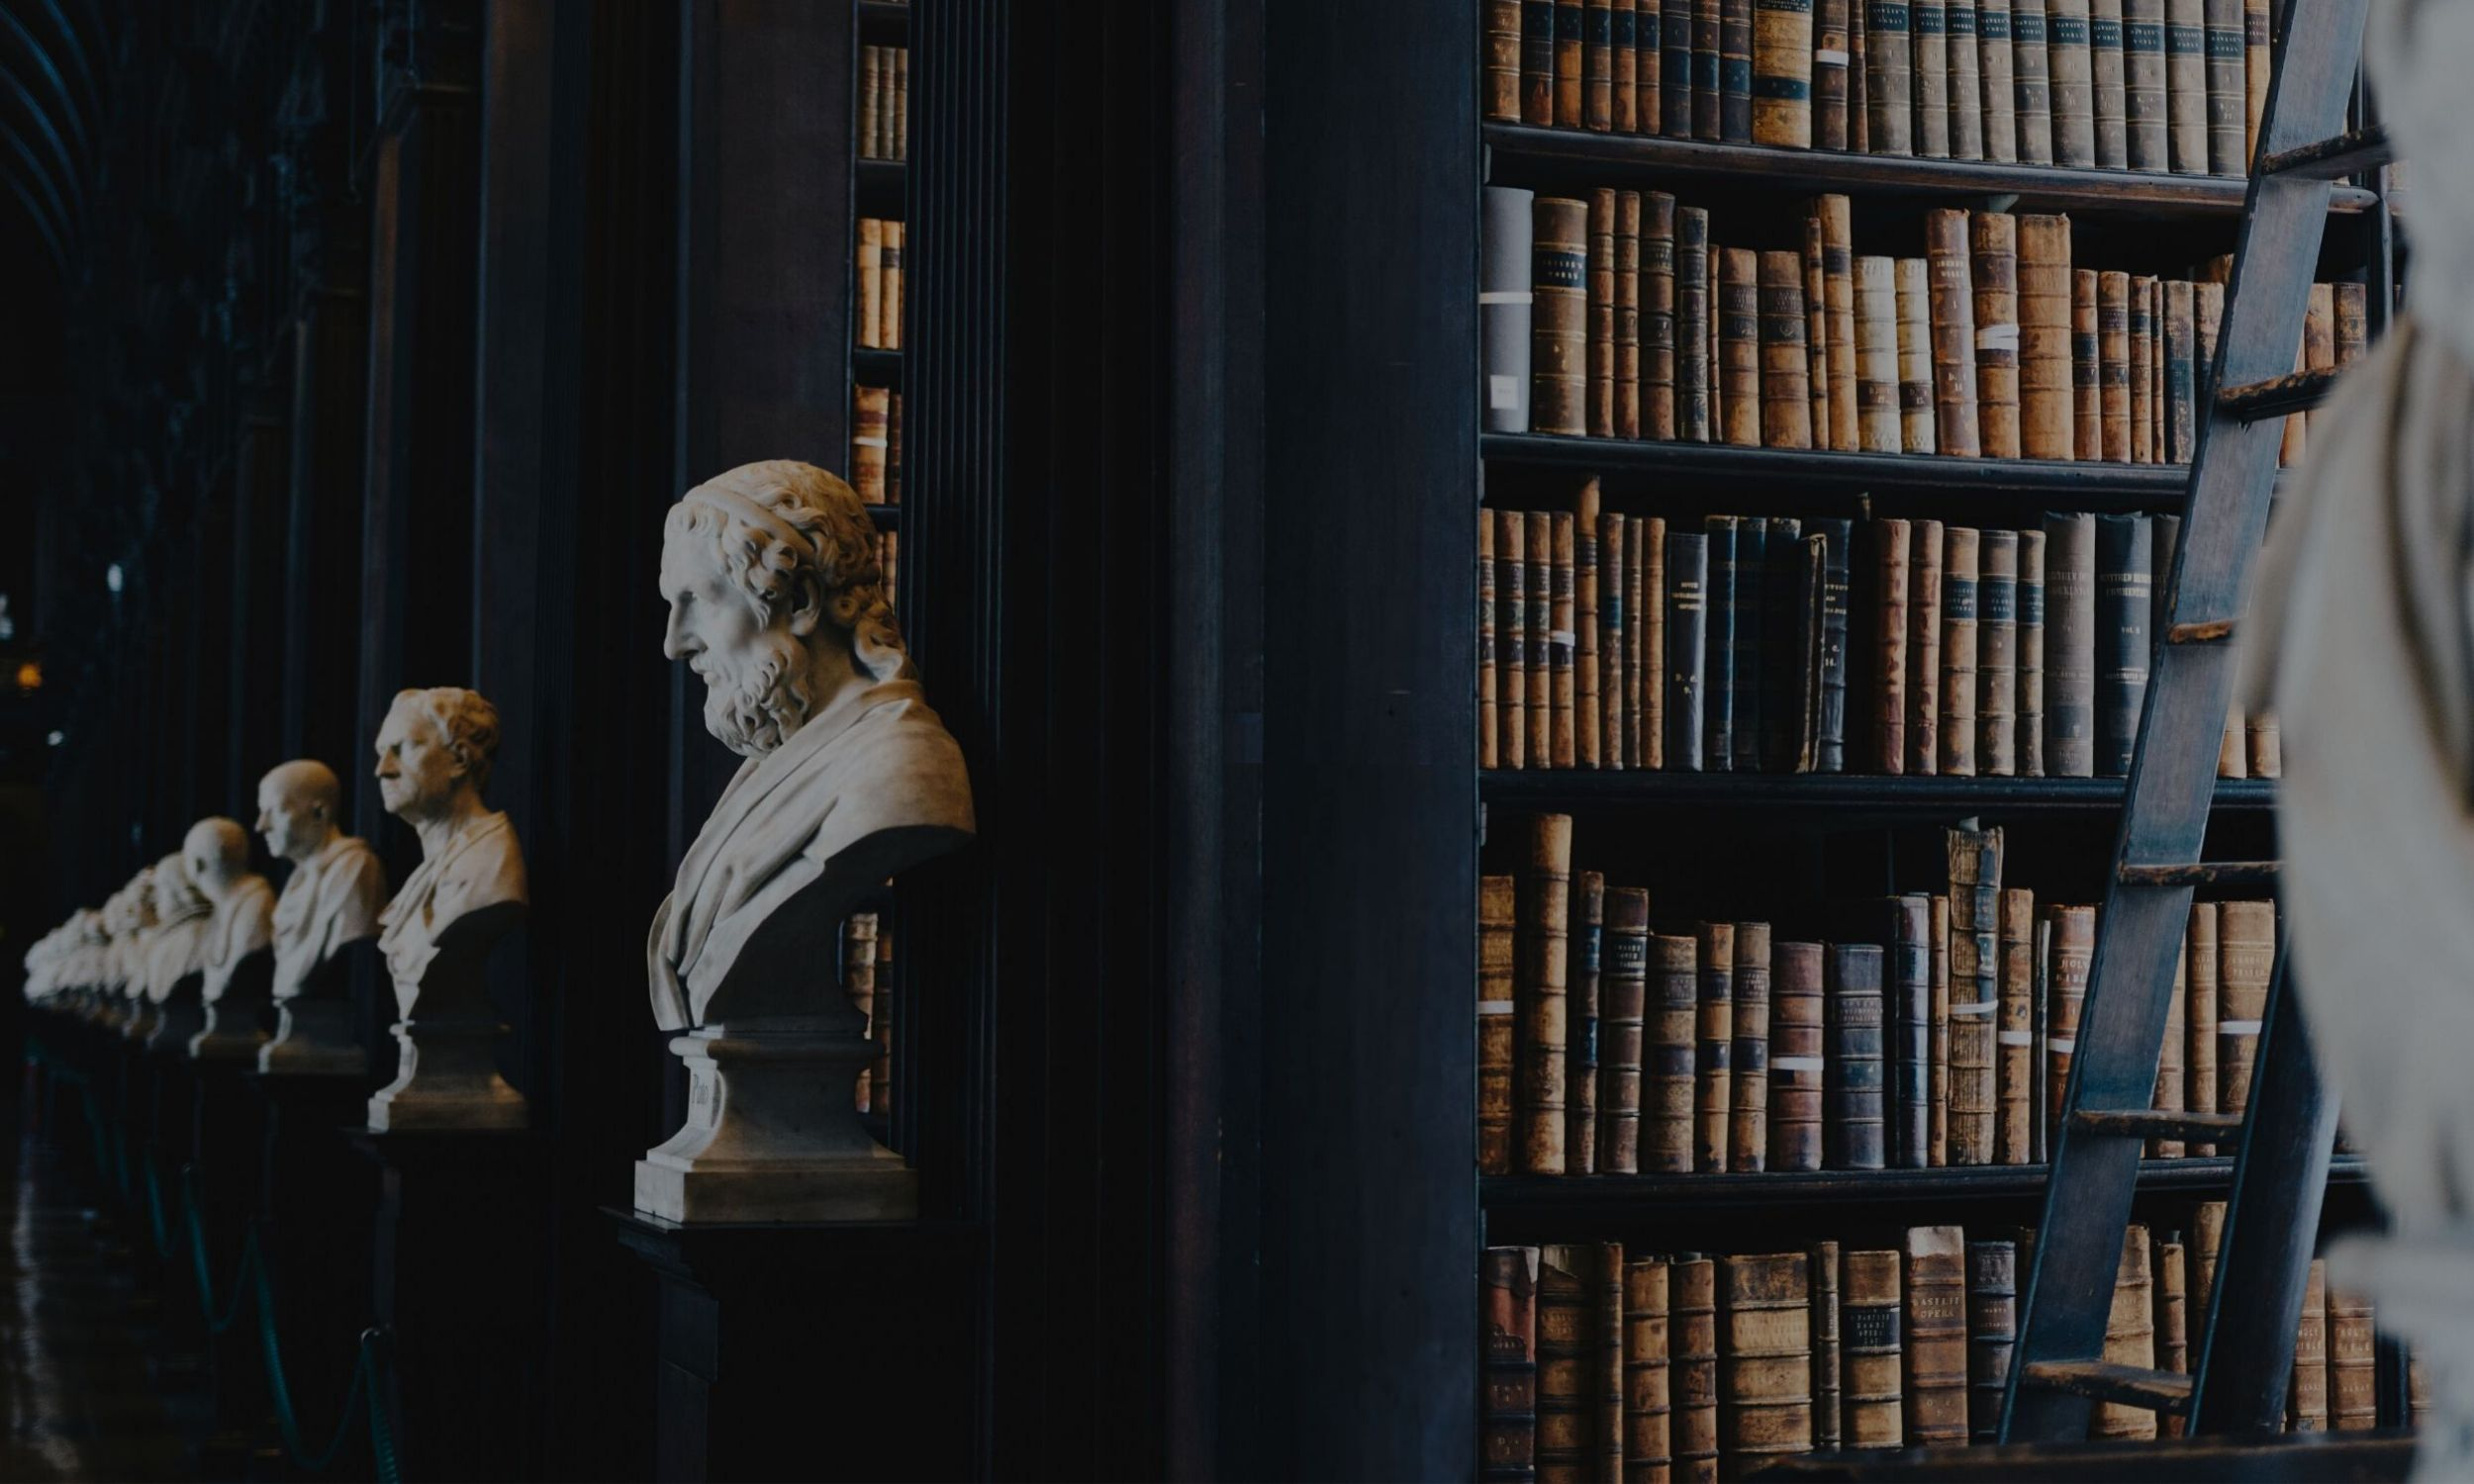 A number of marble busts of philosophers in a library with lots of old looking books